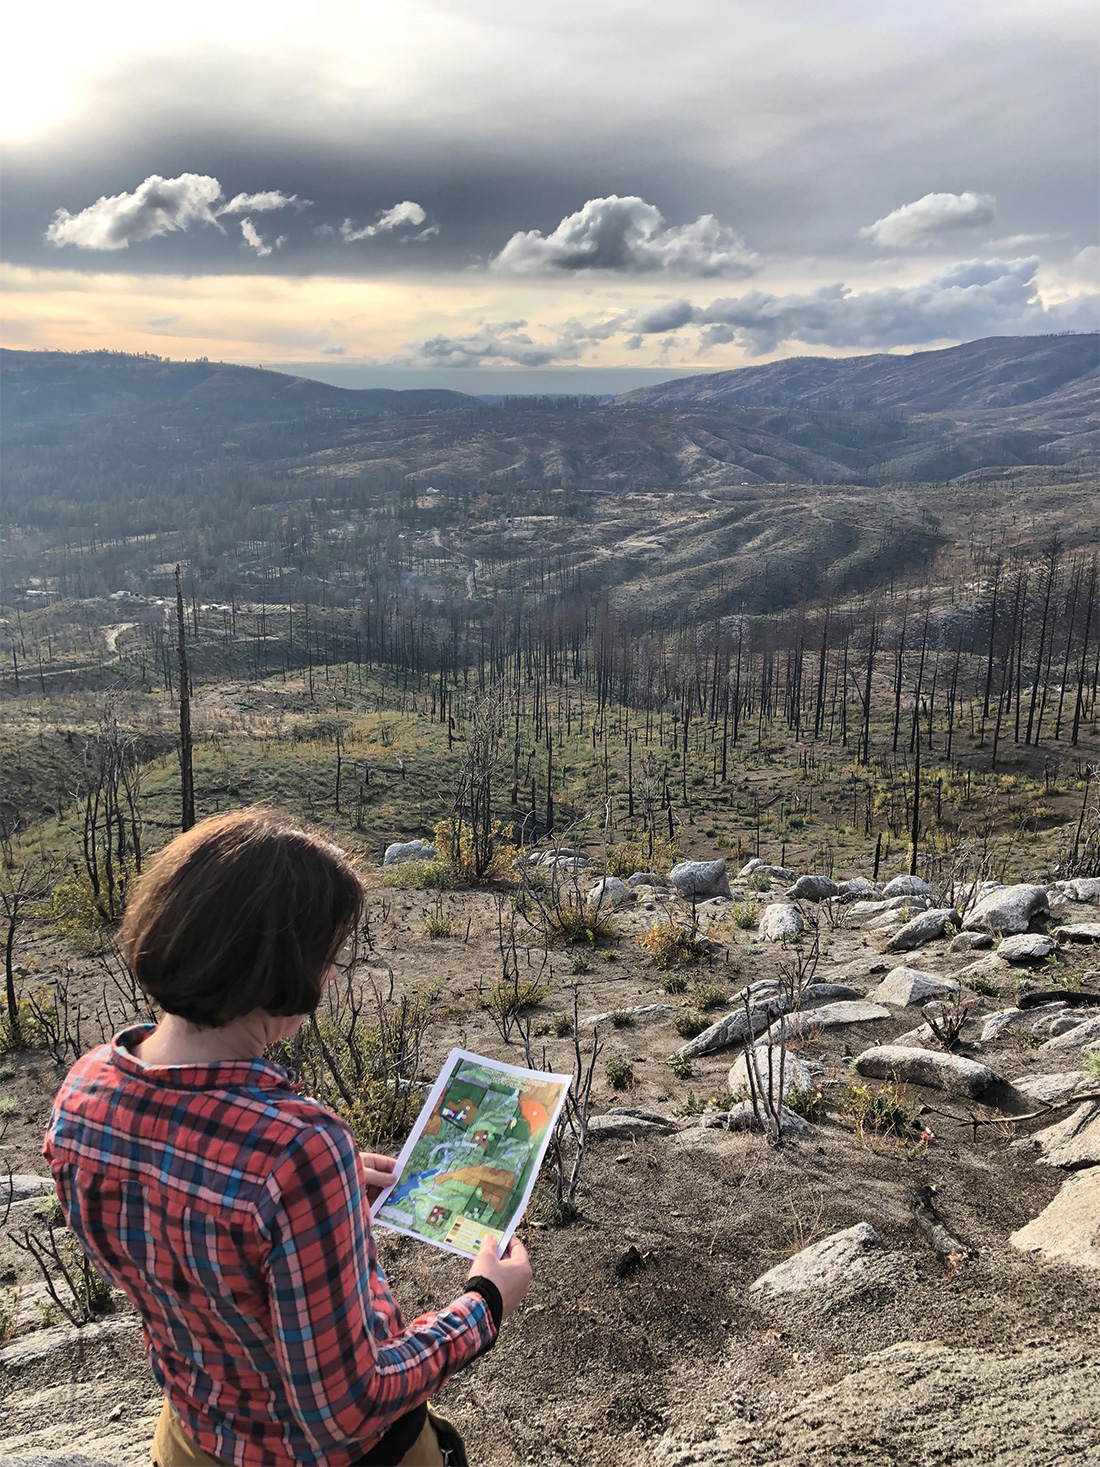 Wolfy Rougle, of the Butte County Resource Conservation District, stands above the Concow Basin, surveying draft plans for three innovative reforestation trials to regrow forests after the Camp Fire.